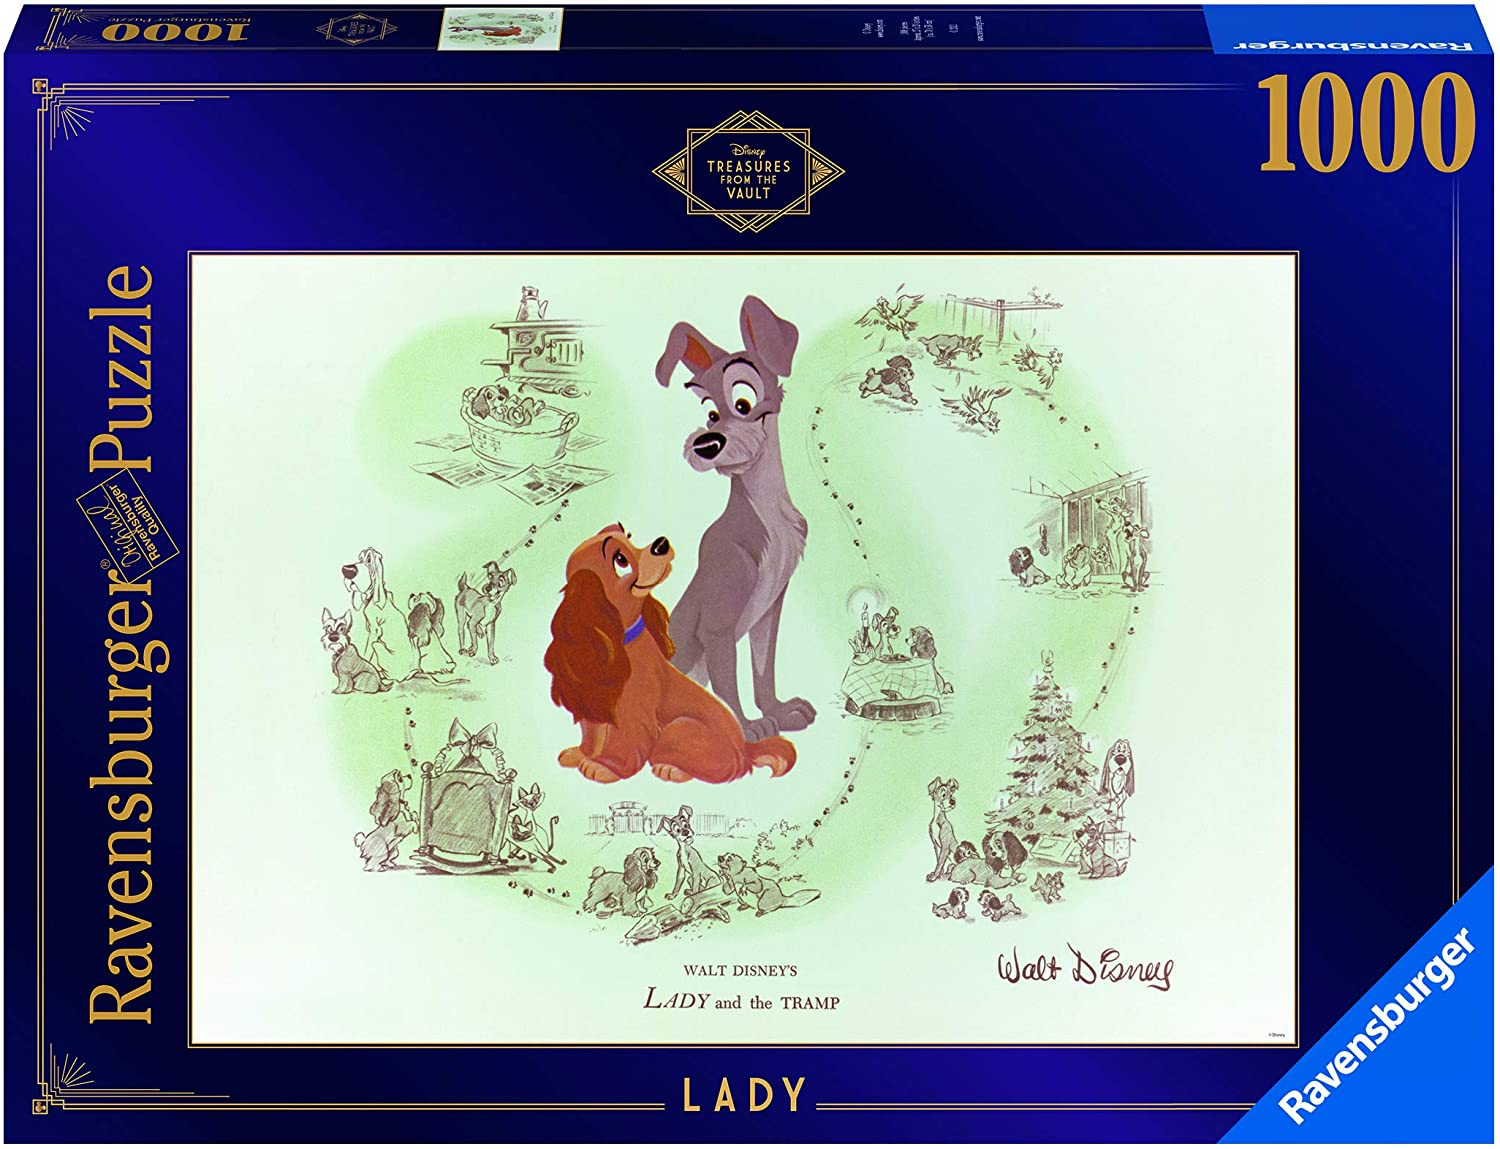 Ravensburger Disney Treasures from The Vault: Lady 1000 Piece Jigsaw Puzzle for Adults – Every Piece is Unique, Softclick Technology Means Pieces Fit Together Perfectly - Amazon Exclusive